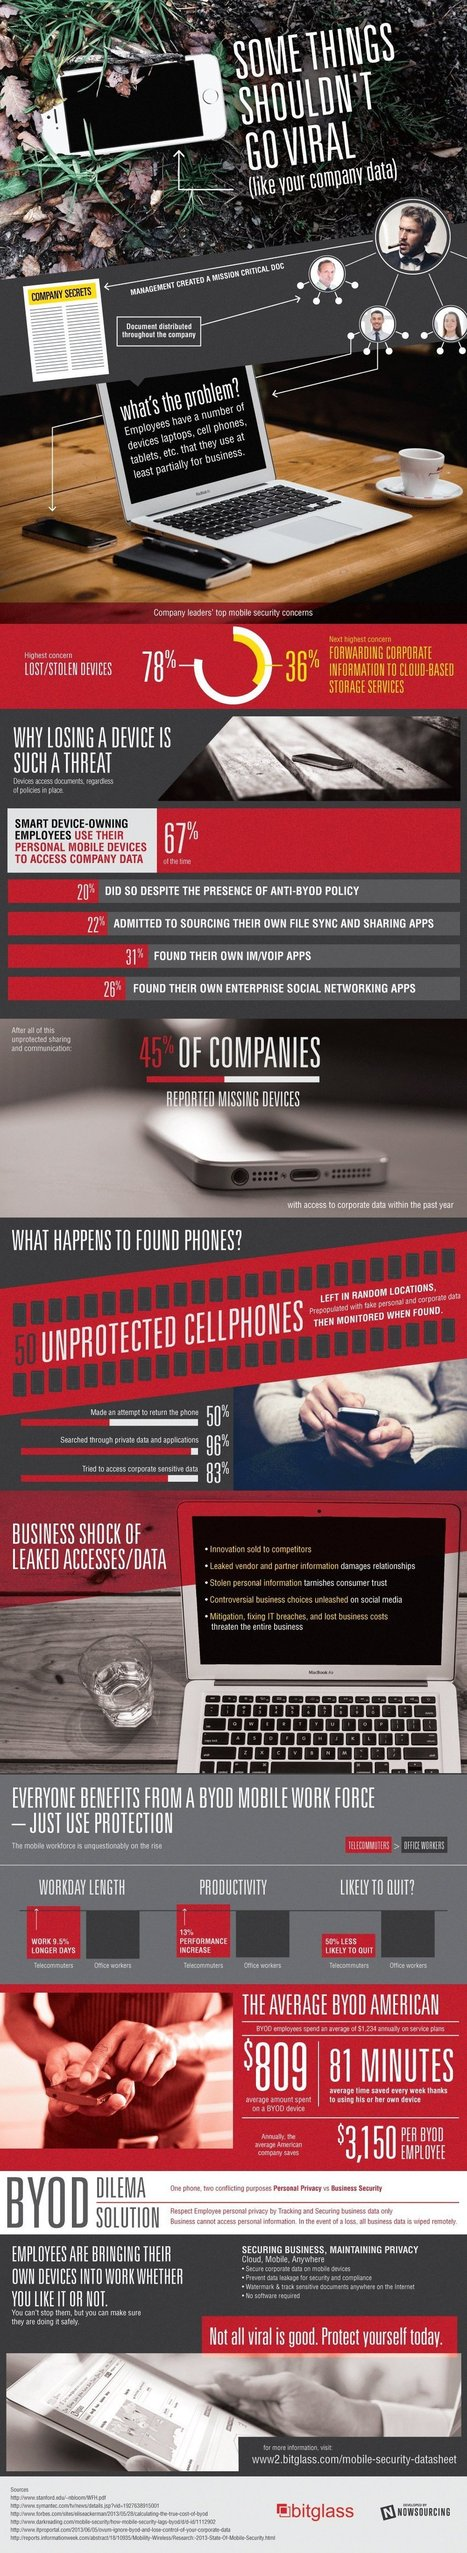 Personal Privacy vs. Business Security | Digital-News on Scoop.it today | Scoop.it